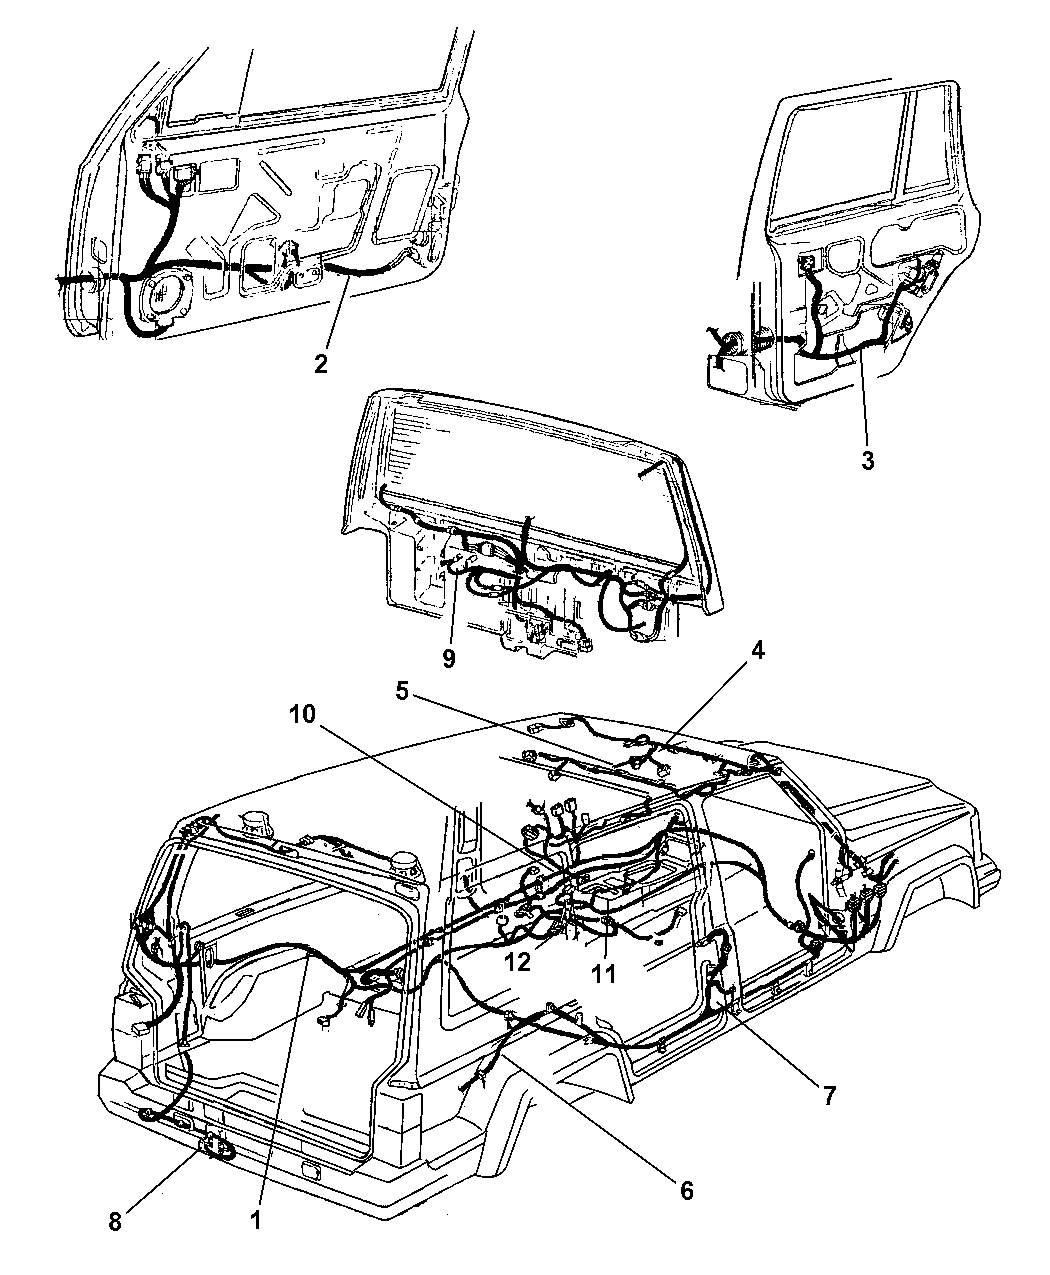 Mopar 56008712AB on ford power seat wiring diagram, volvo power seat wiring diagram, lincoln power seat wiring diagram, dodge power seat wiring diagram,